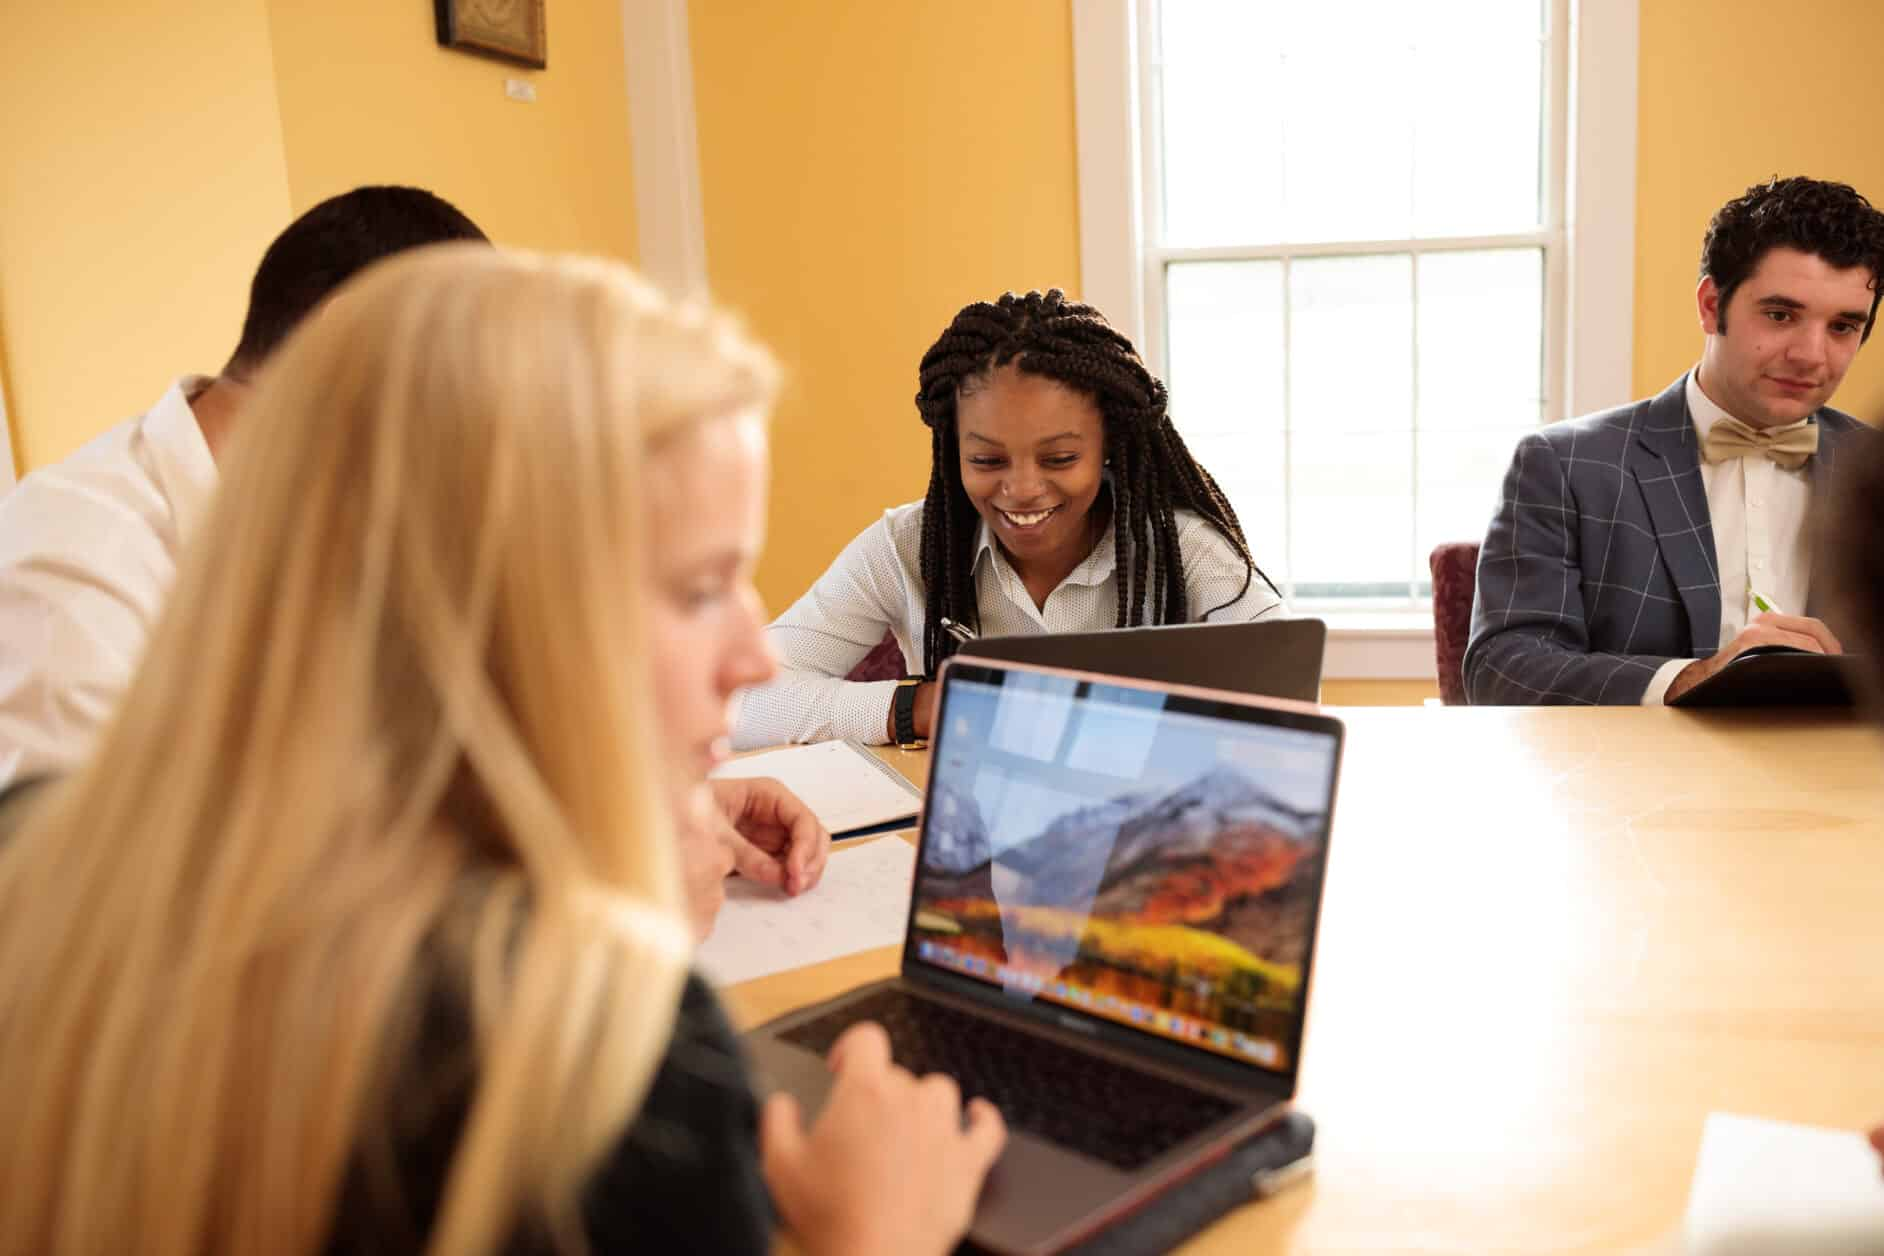 Business students sit around a yellow conference table working on laptops